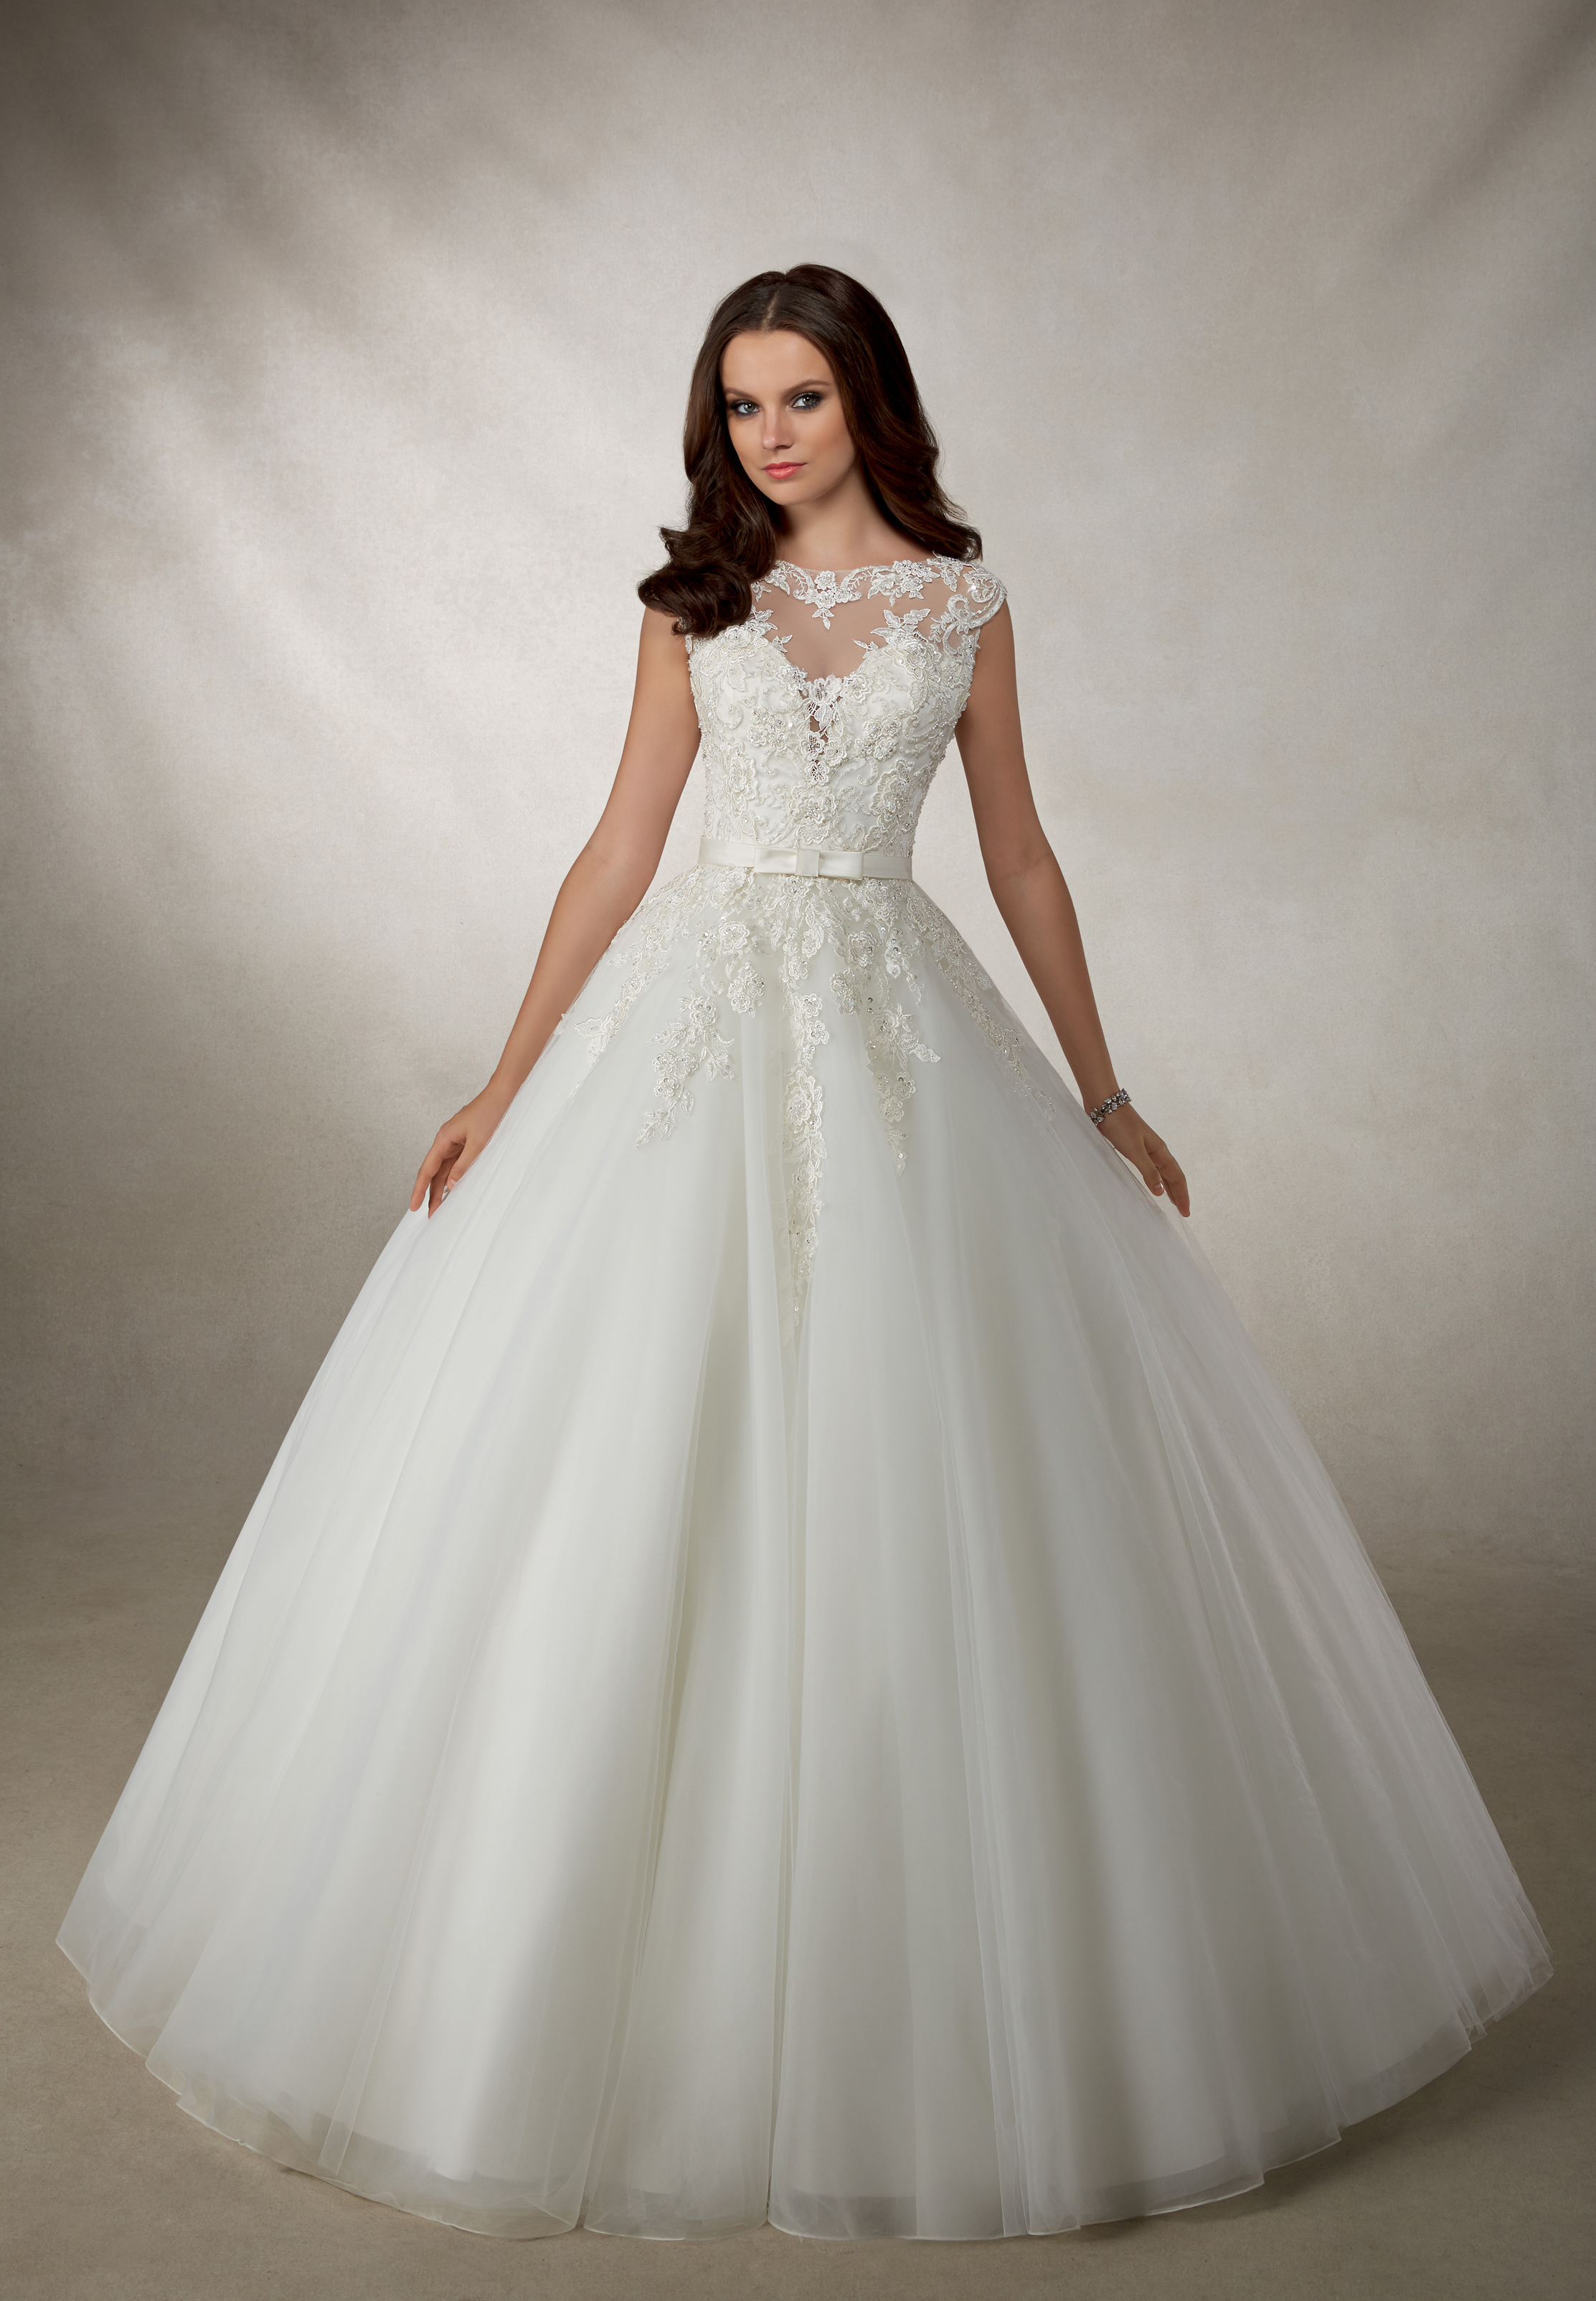 Angelica 69118 Ronald Joyce Wedding Dress Ball Gown With A Tulle Skirt And Lace Bod Wedding Dress Shopping Contemporary Wedding Dress Stunning Wedding Dresses [ 3207 x 2225 Pixel ]